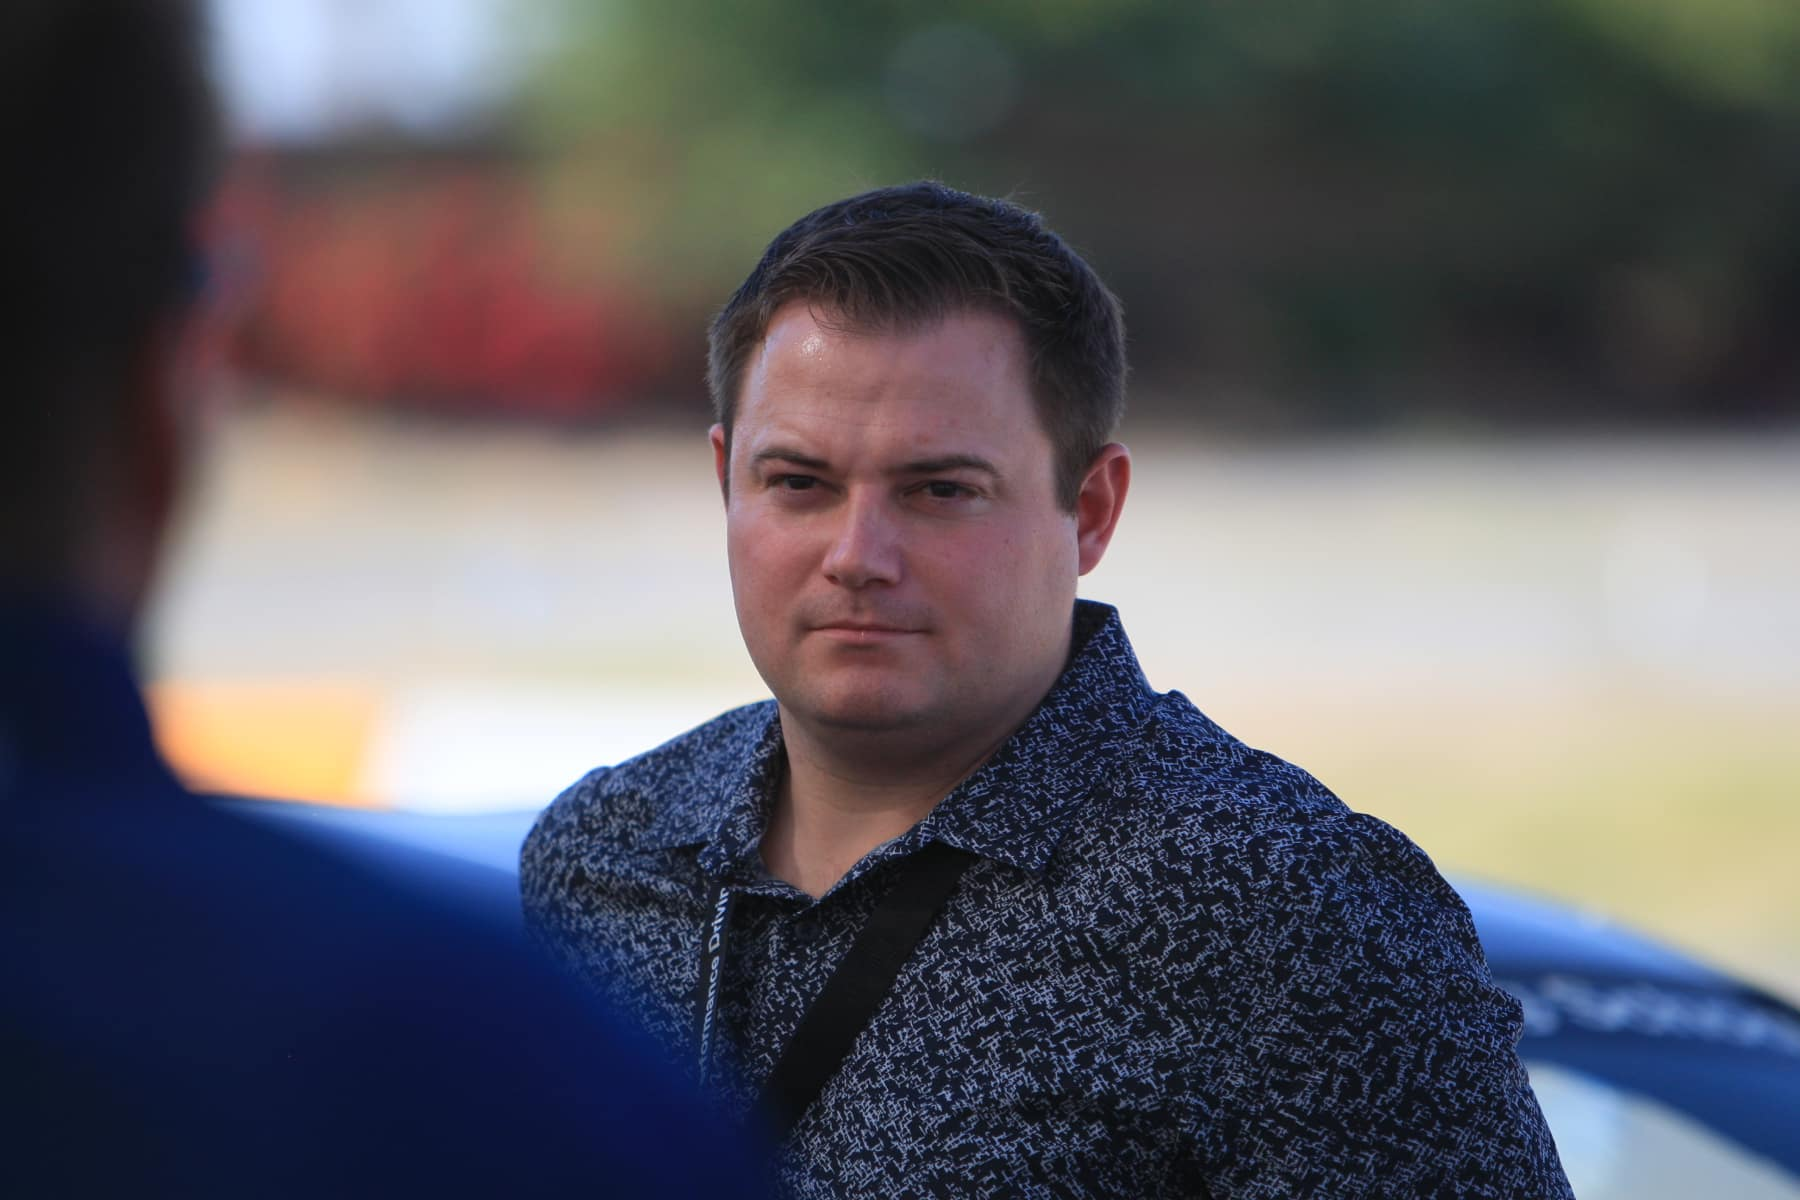 Photo of Peter Brecht, looking all pensive at a BMW Race Day at Thermal. Super snazzy button up blue shirt.